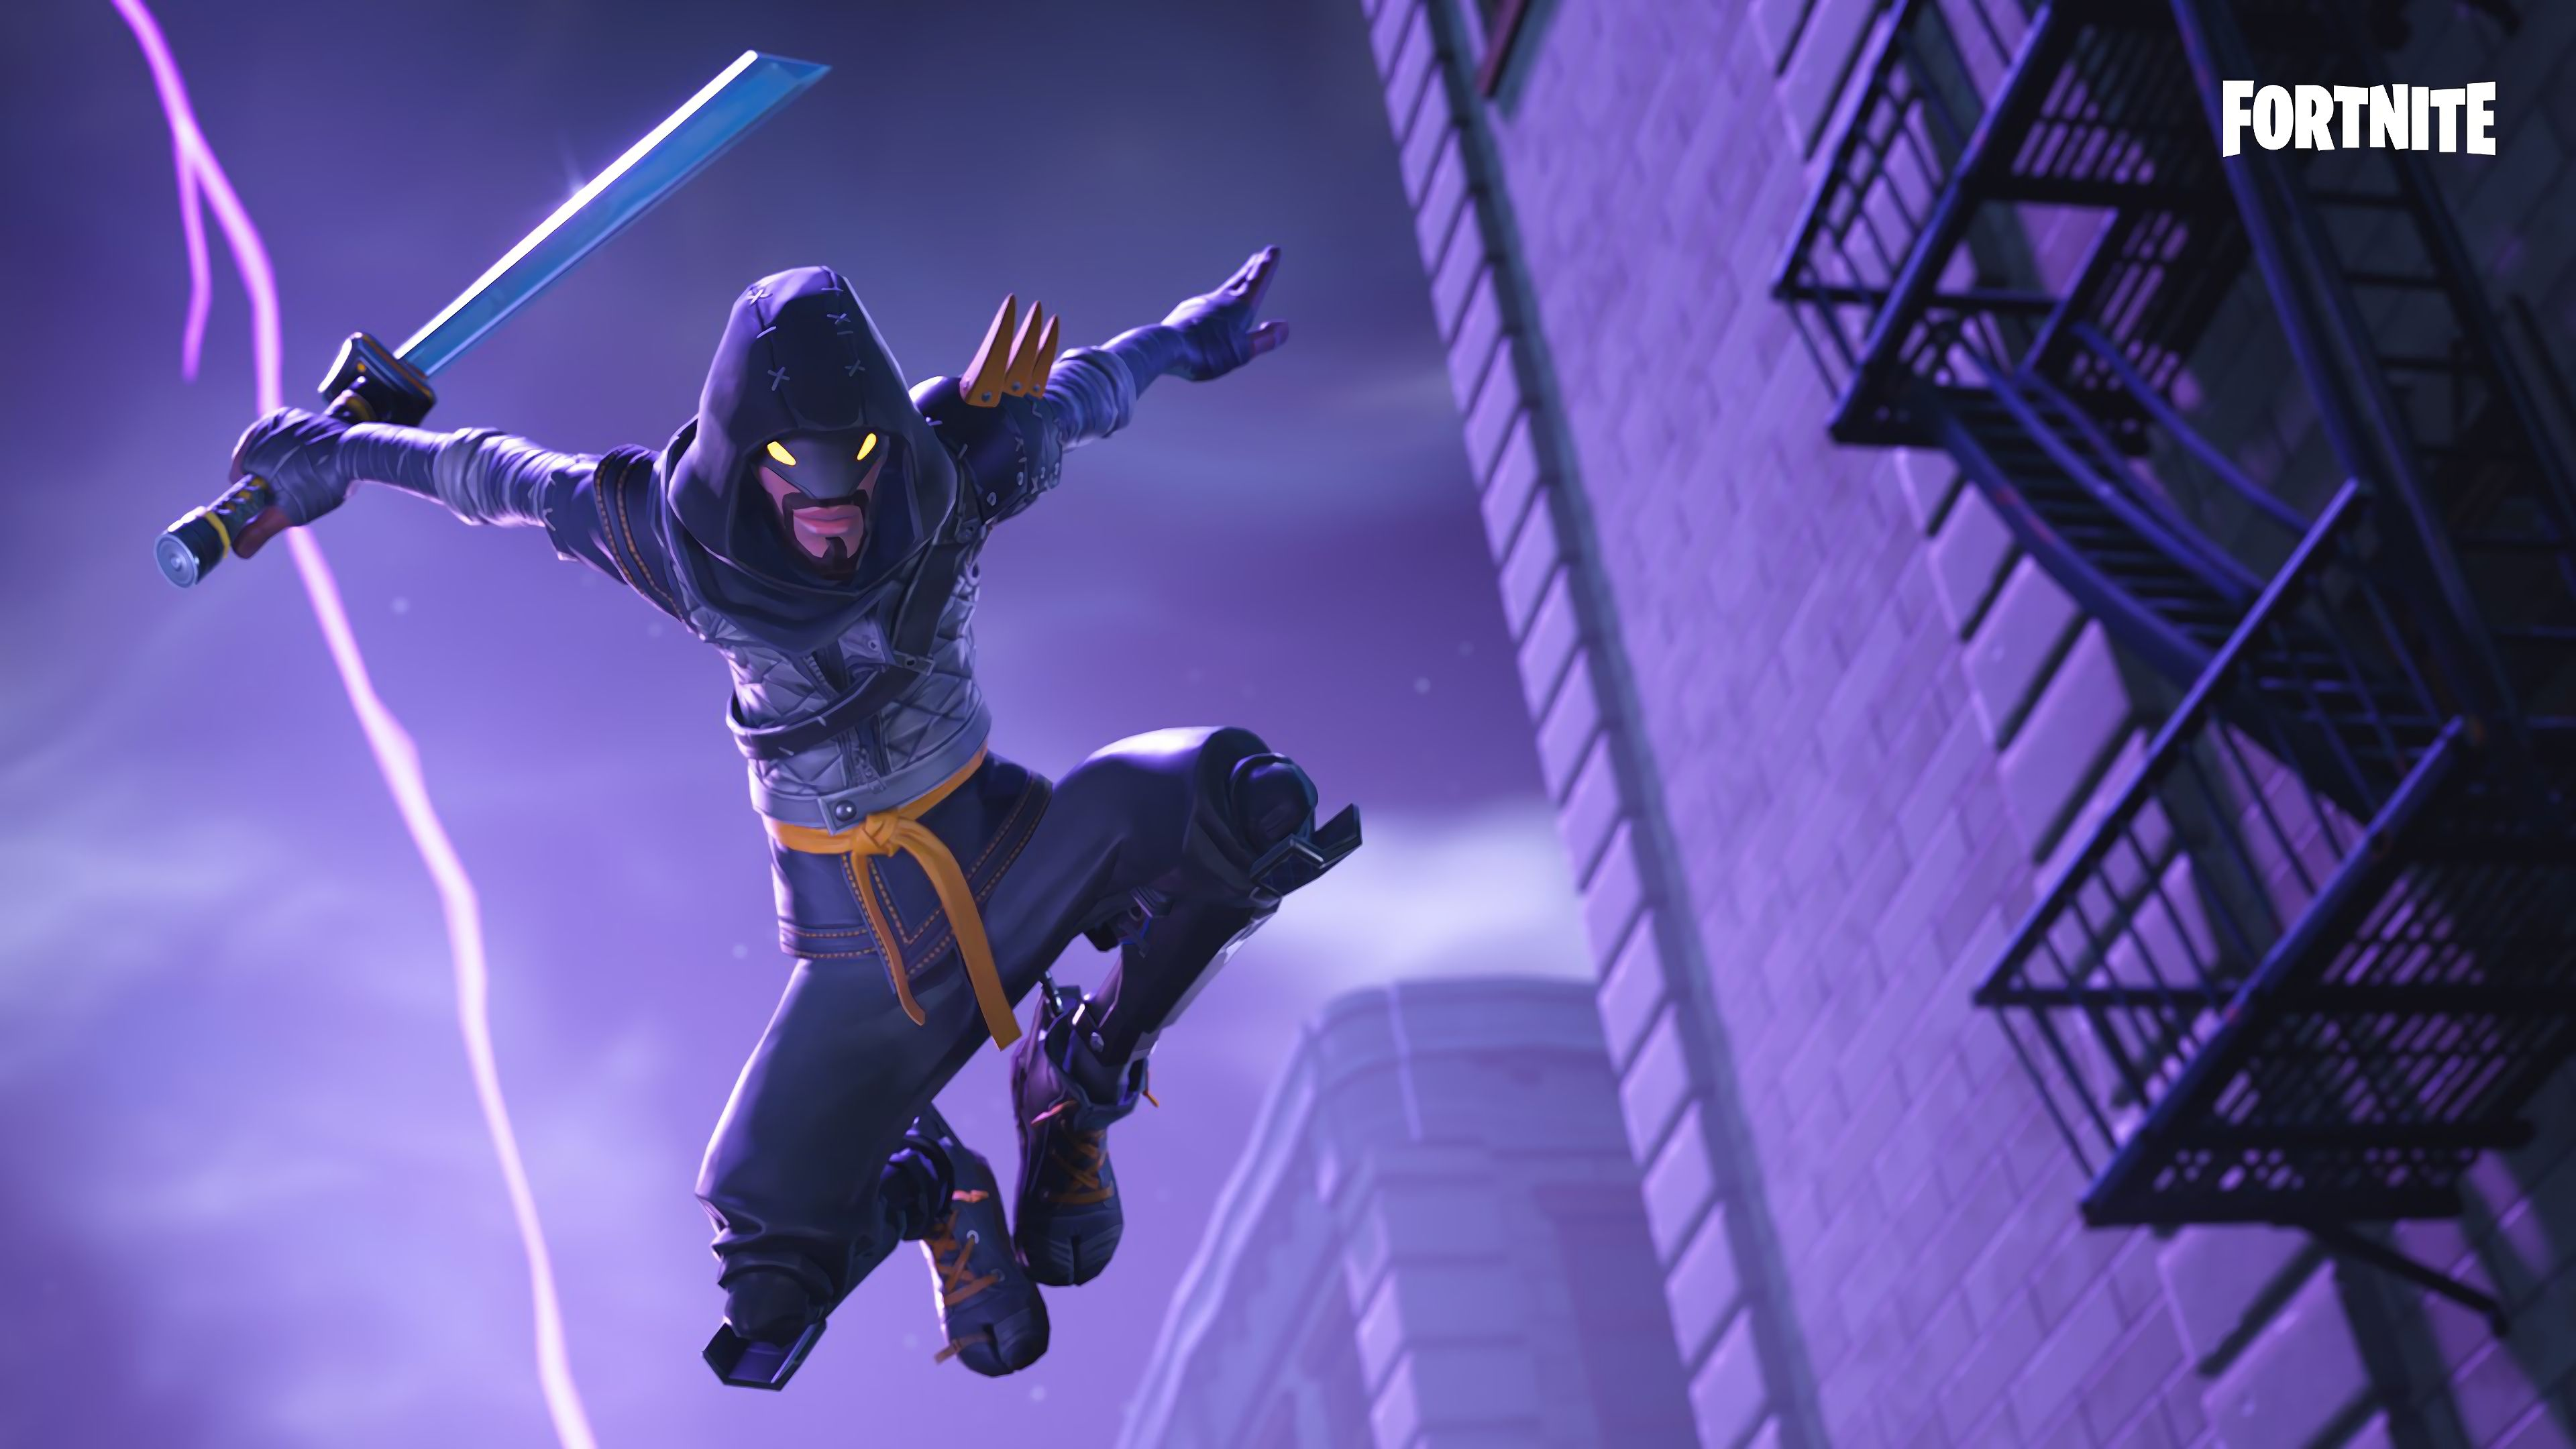 Wallpaper 4k Fortnite Mythic Cloaked Star Ninja 2018 Games